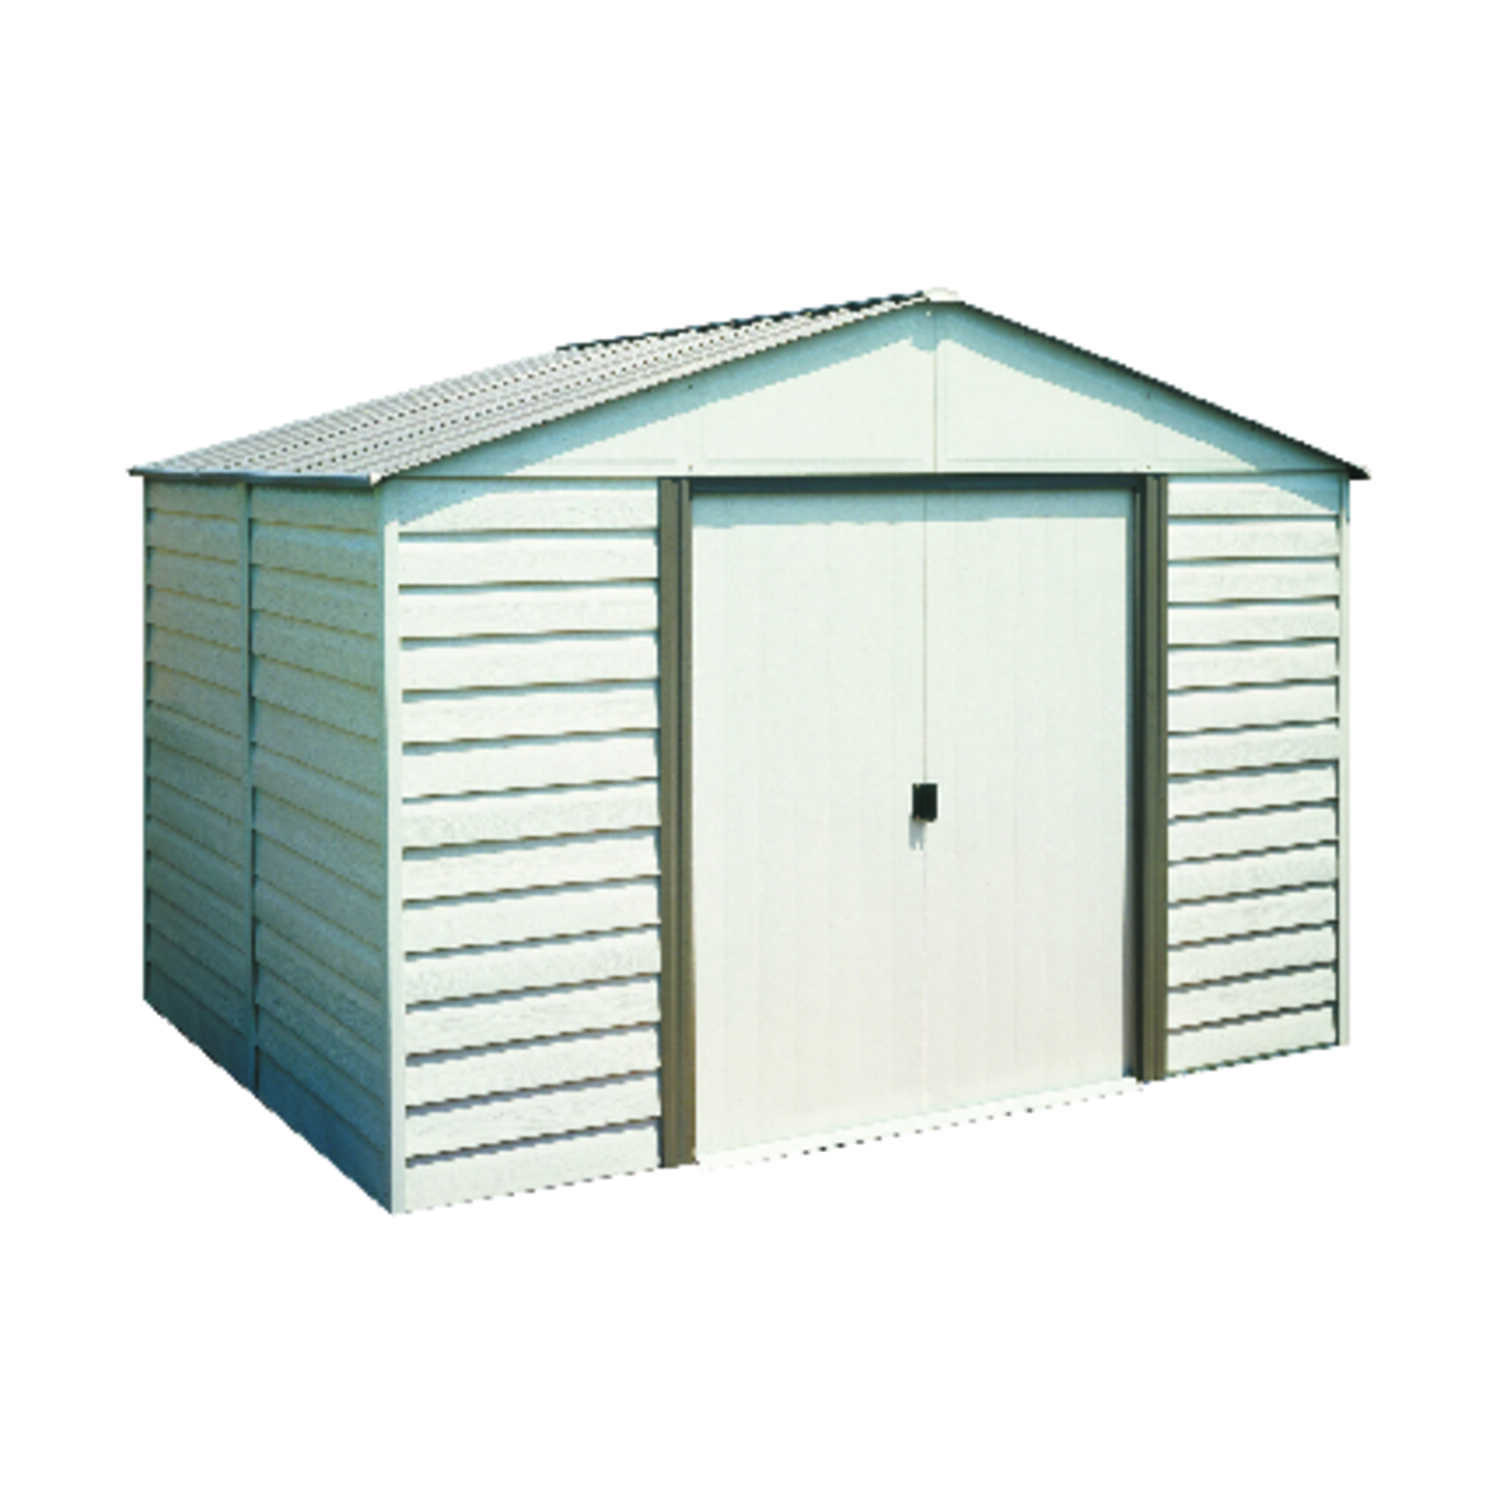 D almond vinyl coated steel storage shed ace hardware